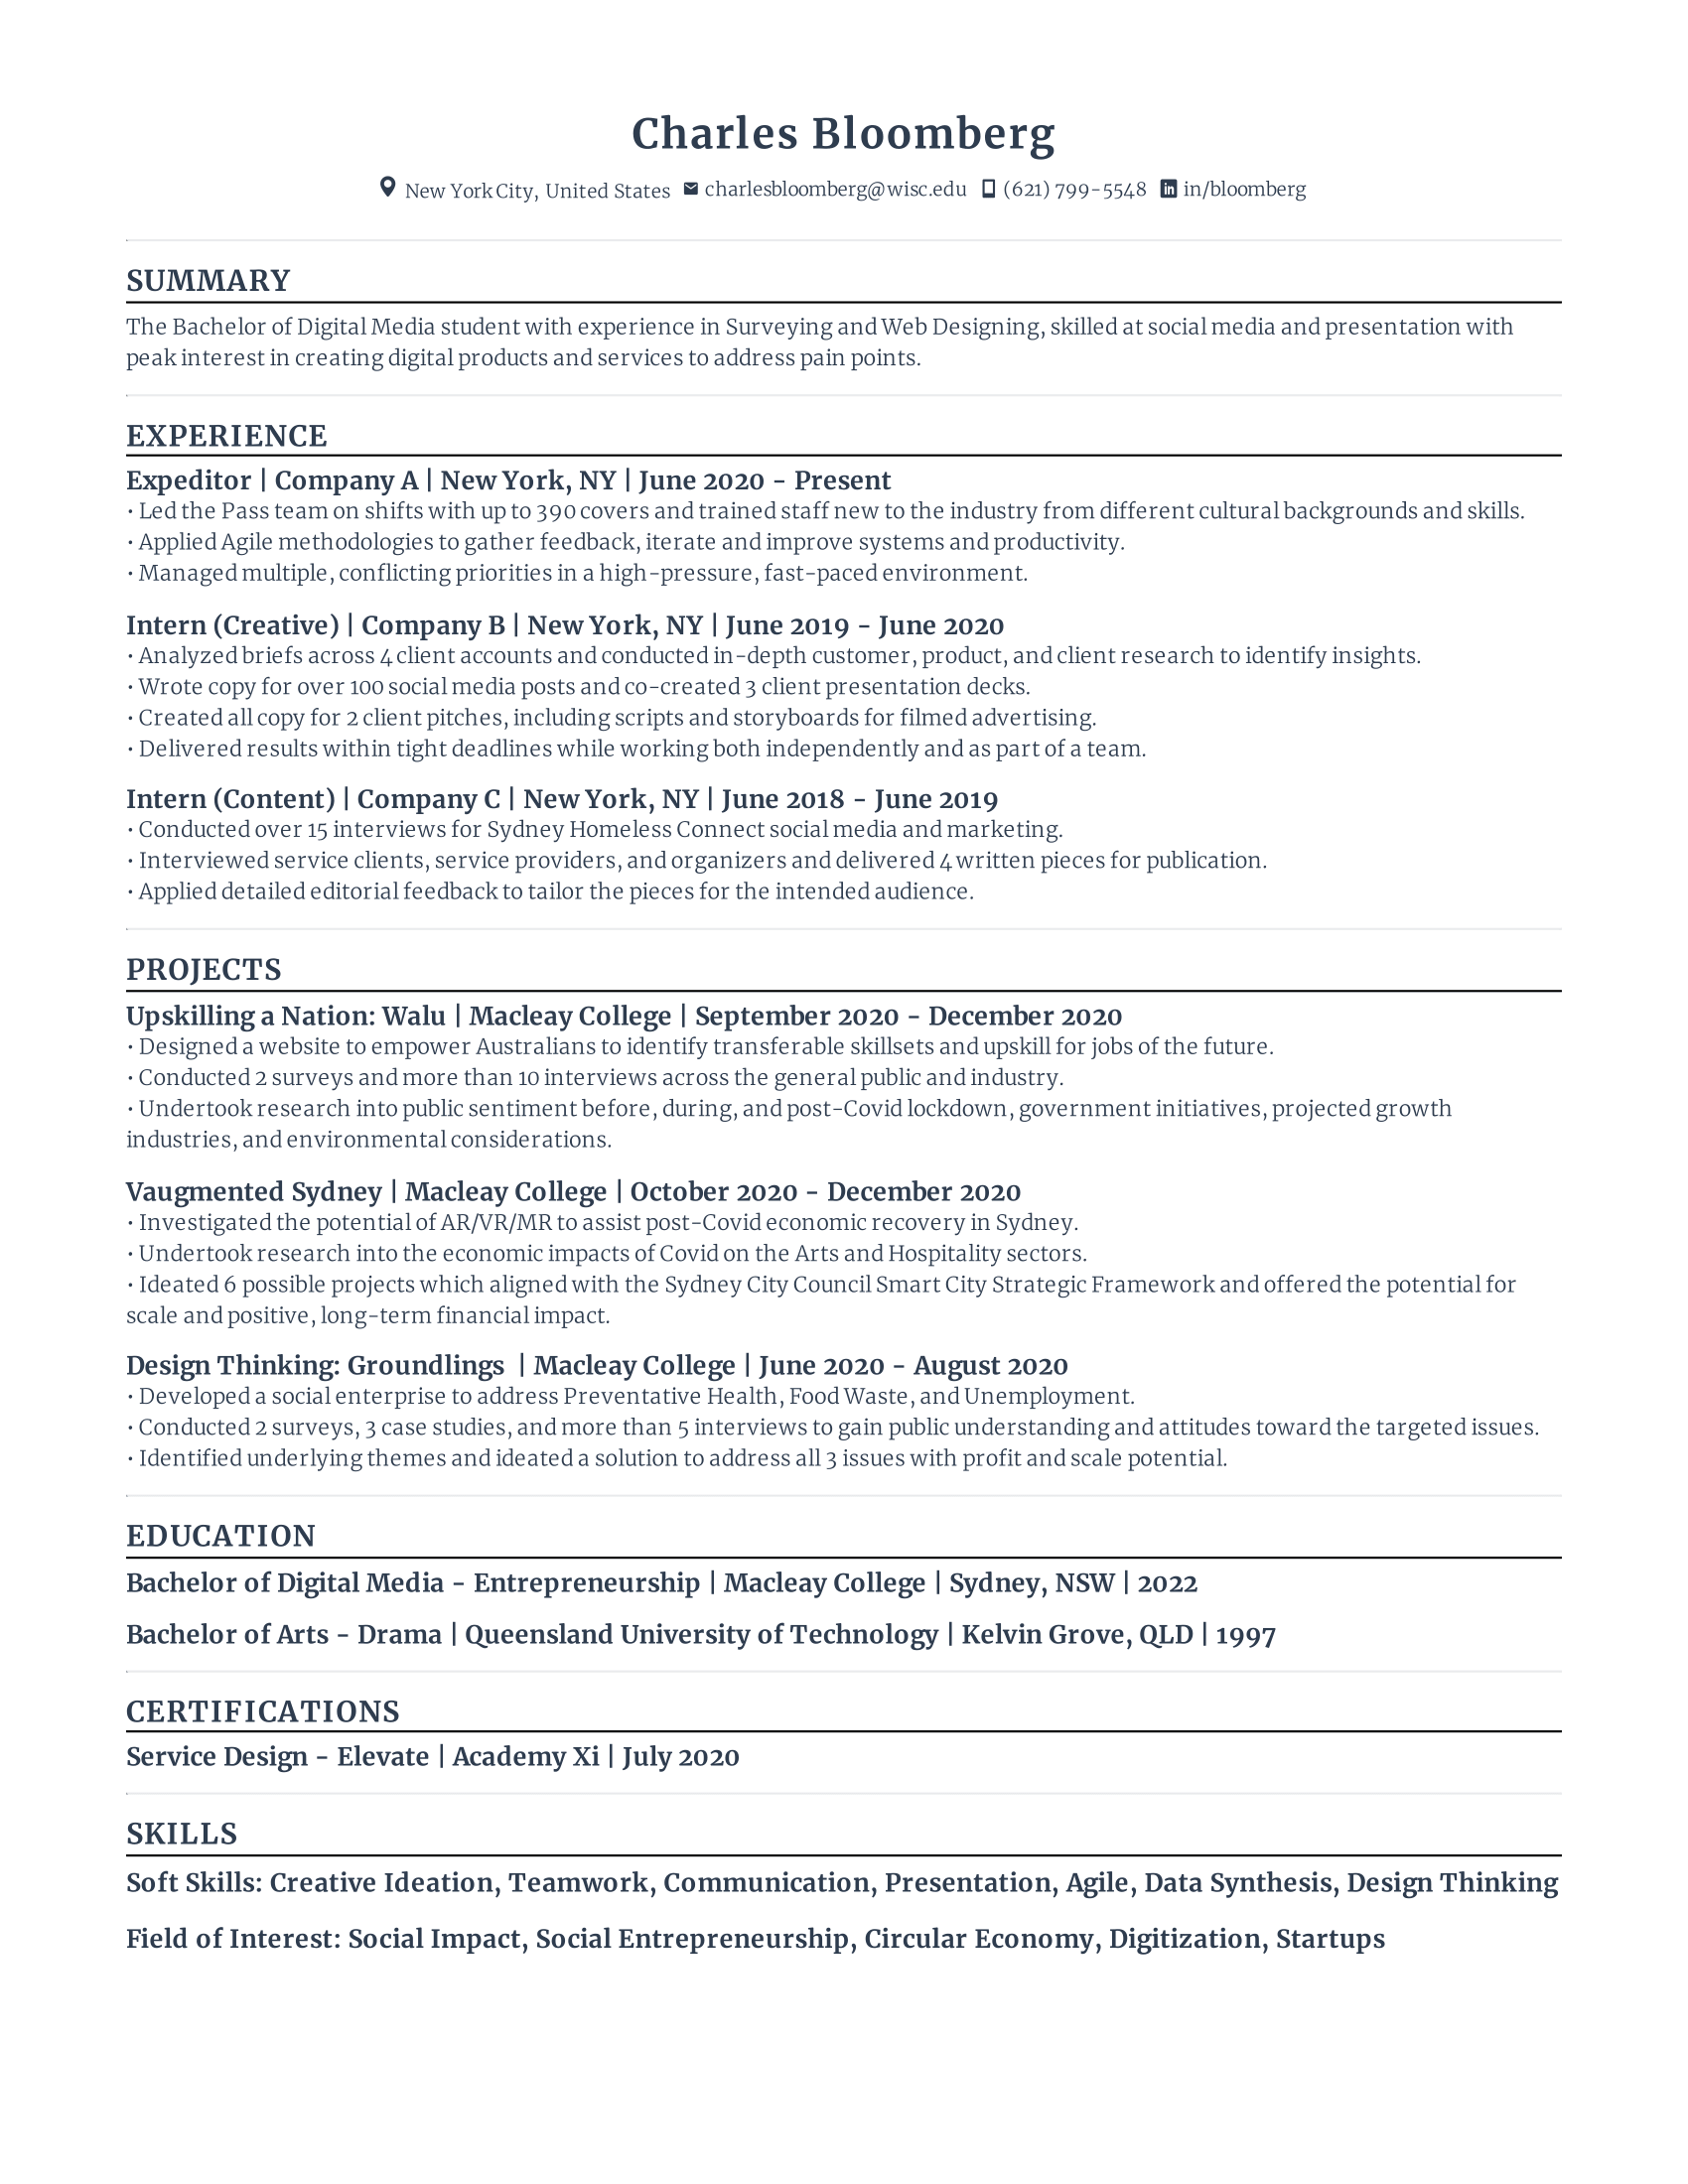 Assistant Policy Intern Resume